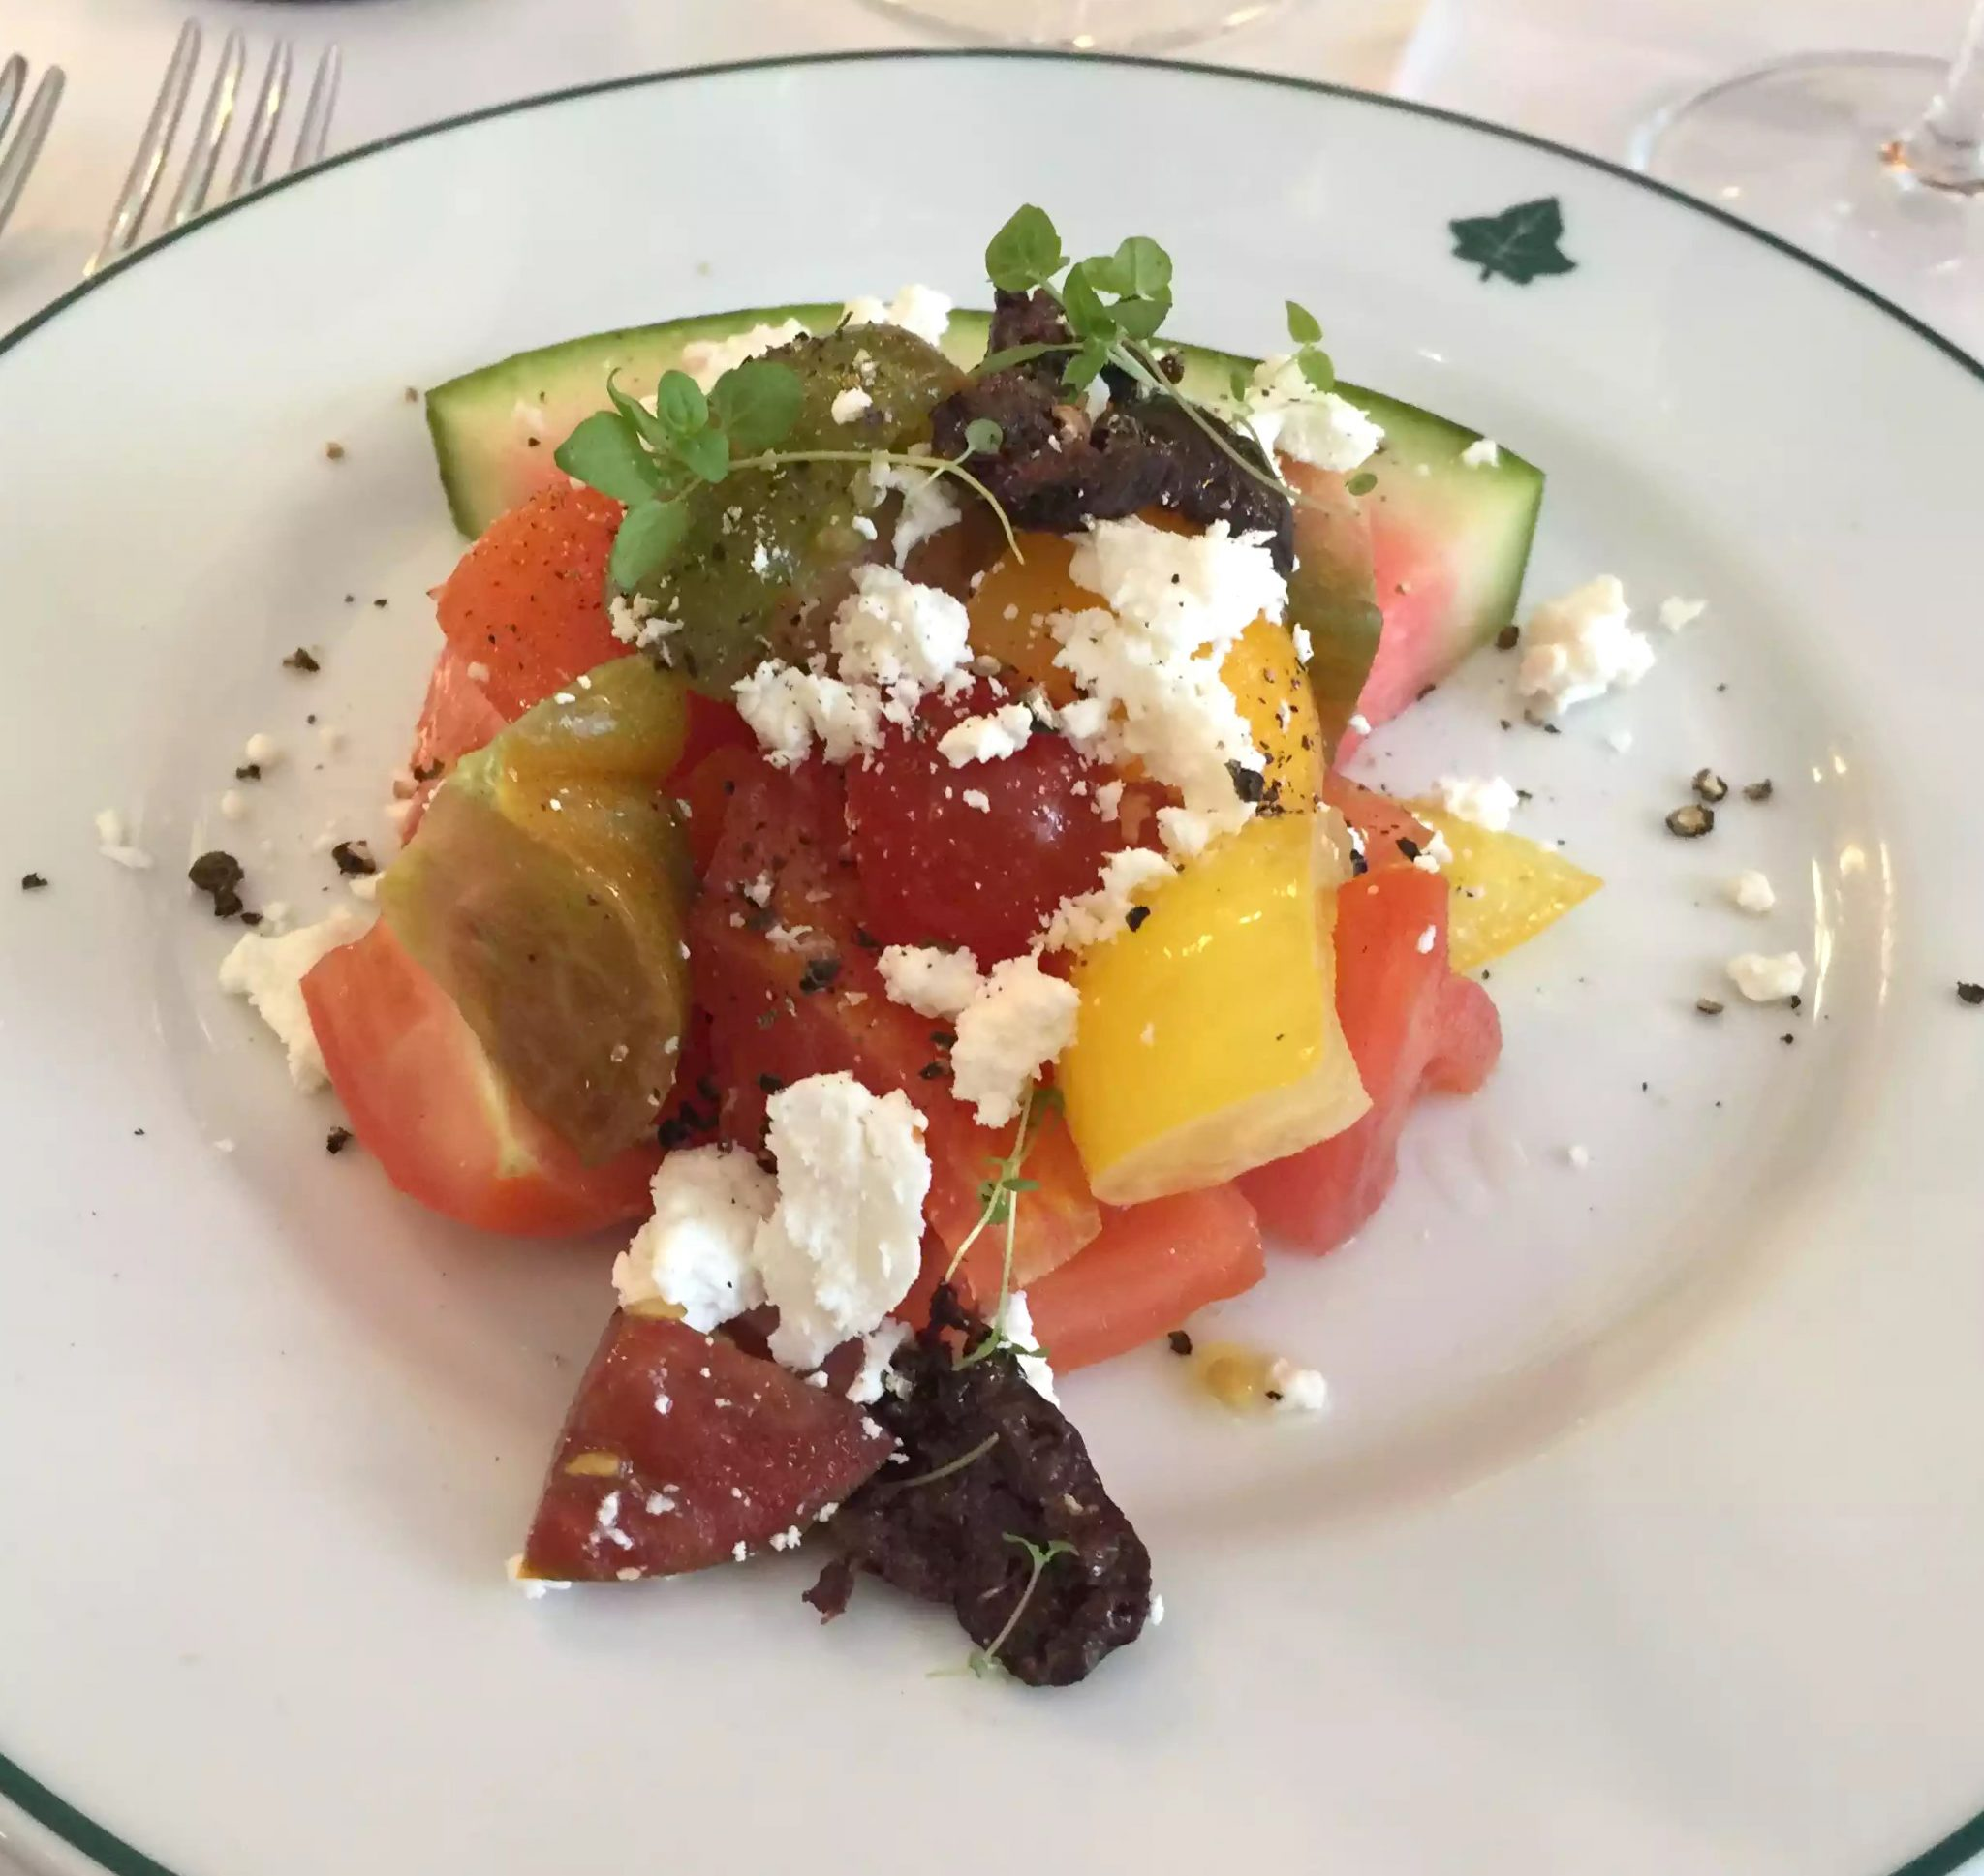 Ivy Cafe Restaurant Review Marylebone London Lunch Watermelon Feta Heritage Tomato